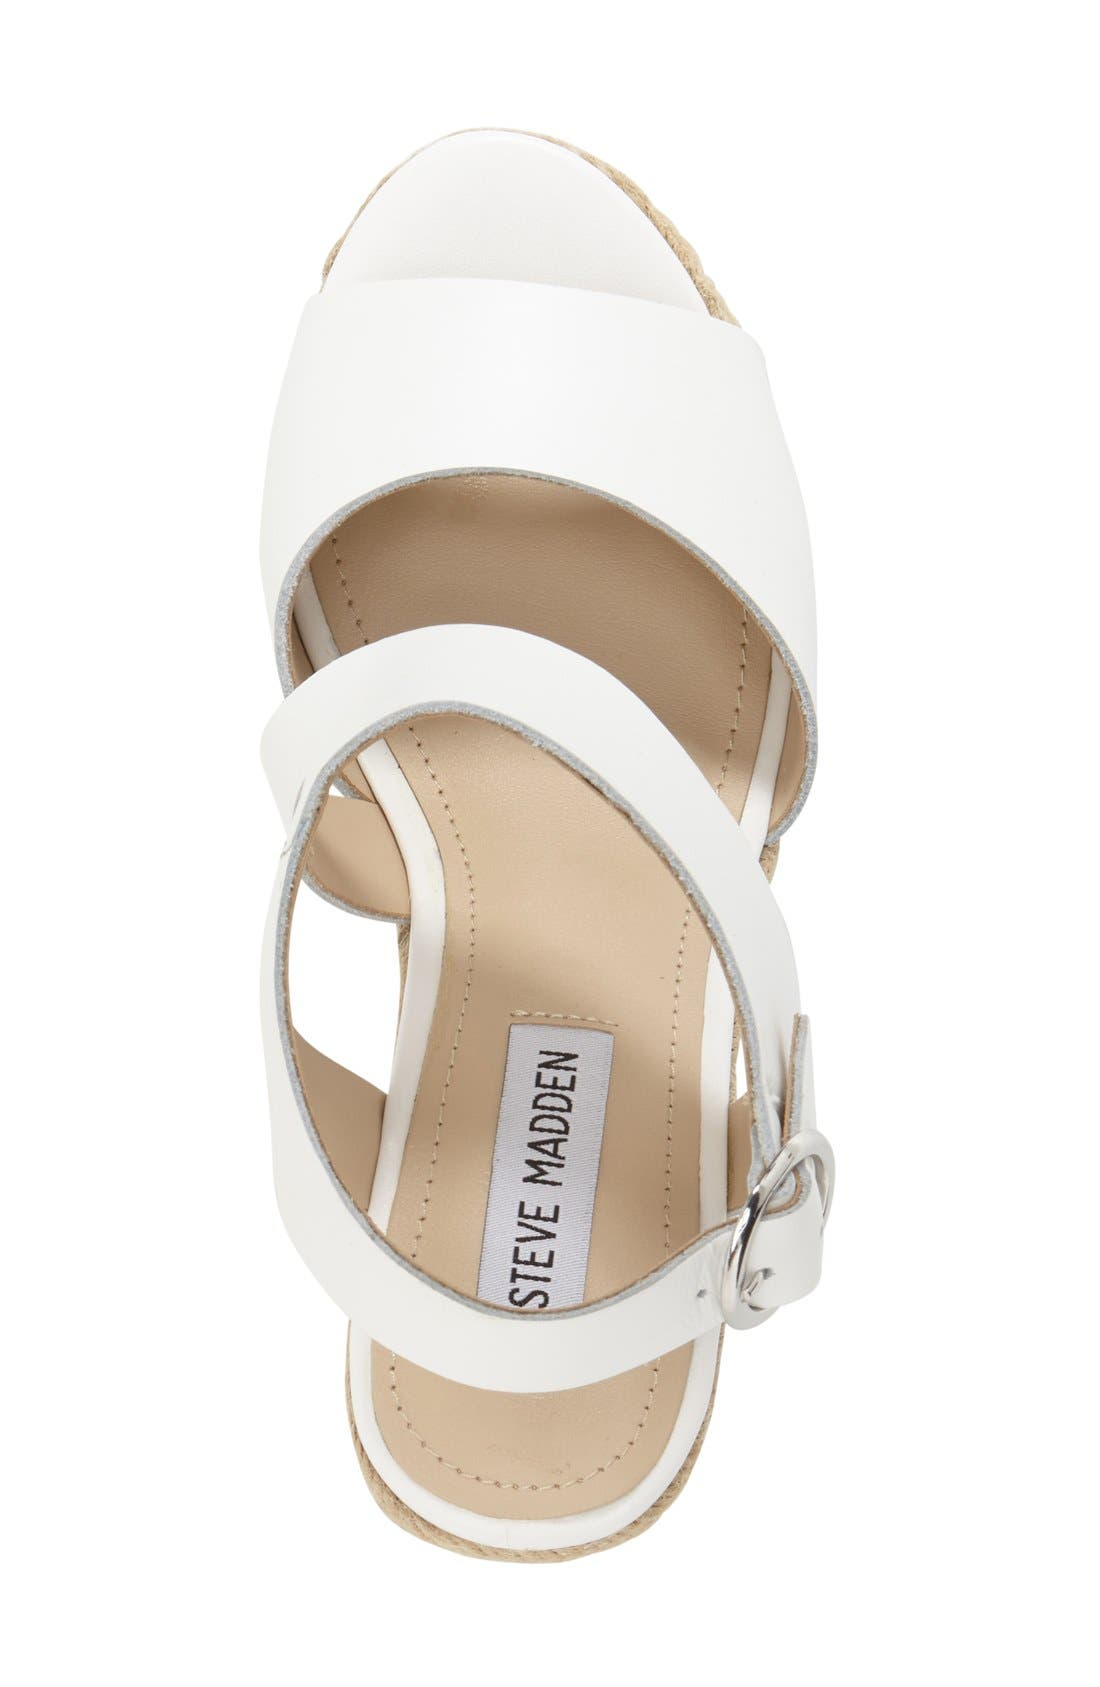 Alternate Image 3  - Steve Madden 'Wavi' Espadrille Wedge Sandal (Women)